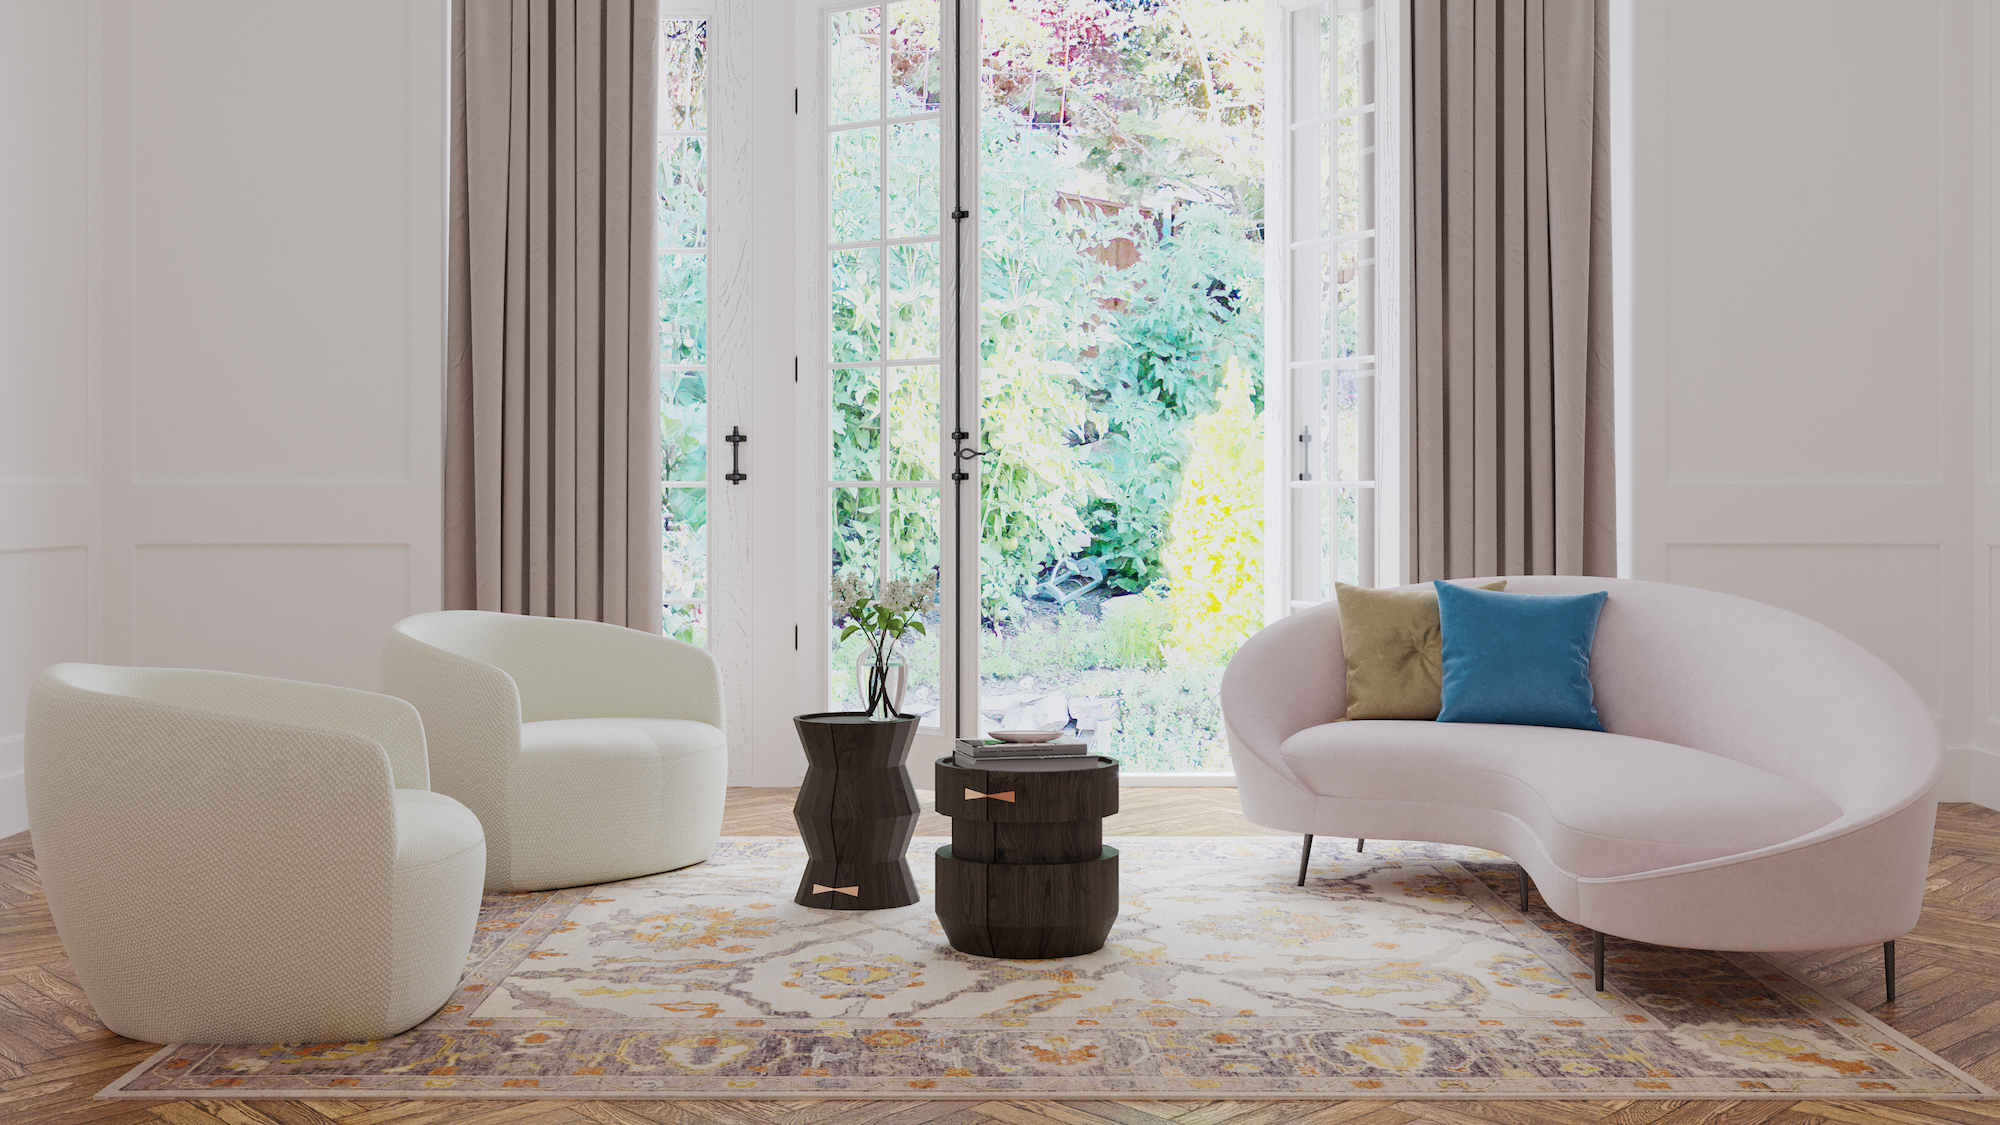 HAND KNOTTED CLASSIC AREA RUGS AT VAHEED TAHERI MODERN RUGS SHOWROOM IN SAN FRANCISCO 'S BEST RUG GALLRY